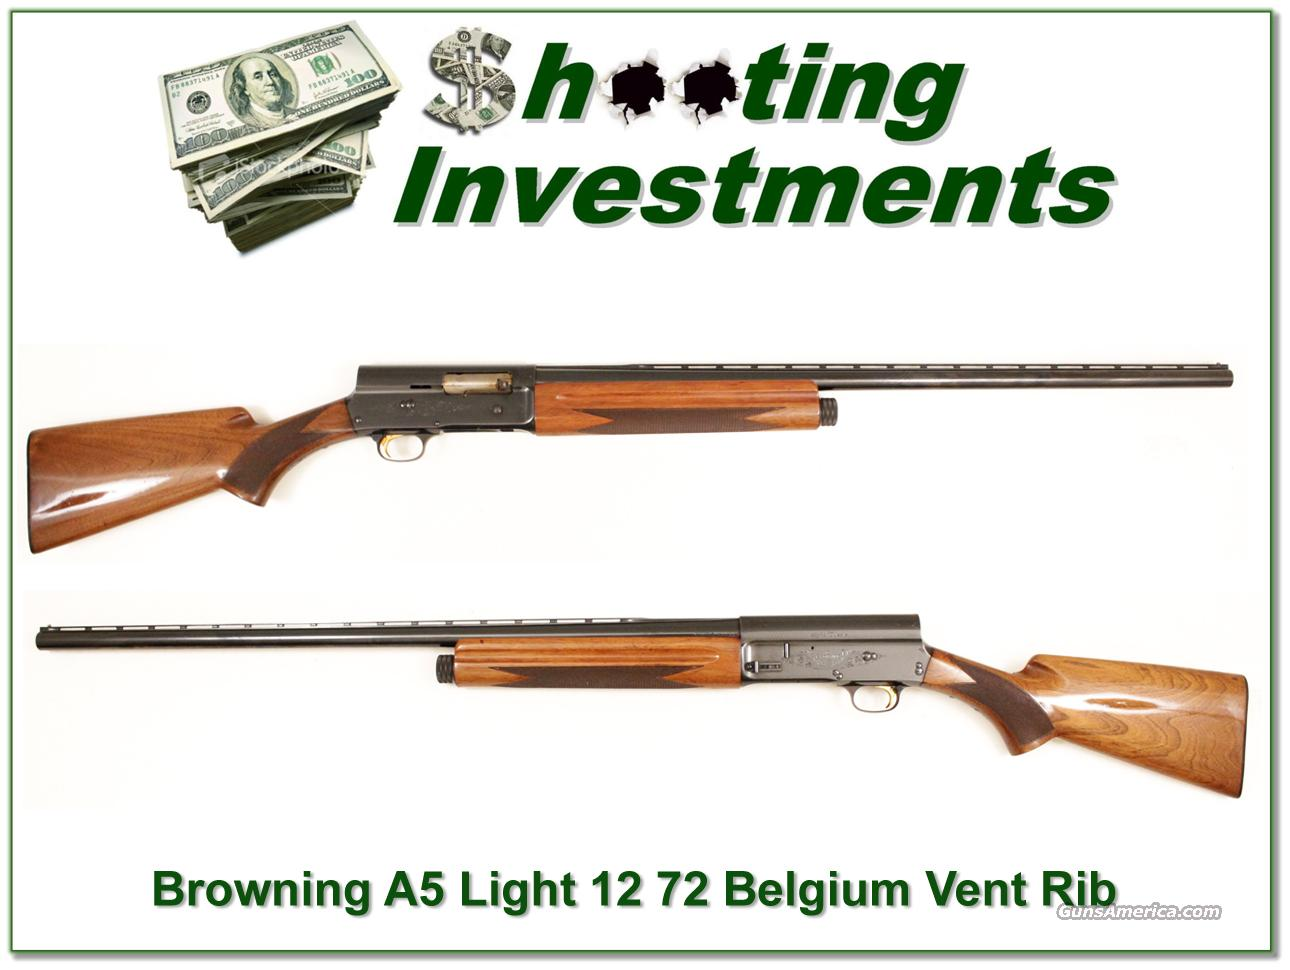 Browning A5 Light 12 72 Belgium Vent Rib  Guns > Shotguns > Browning Shotguns > Autoloaders > Hunting